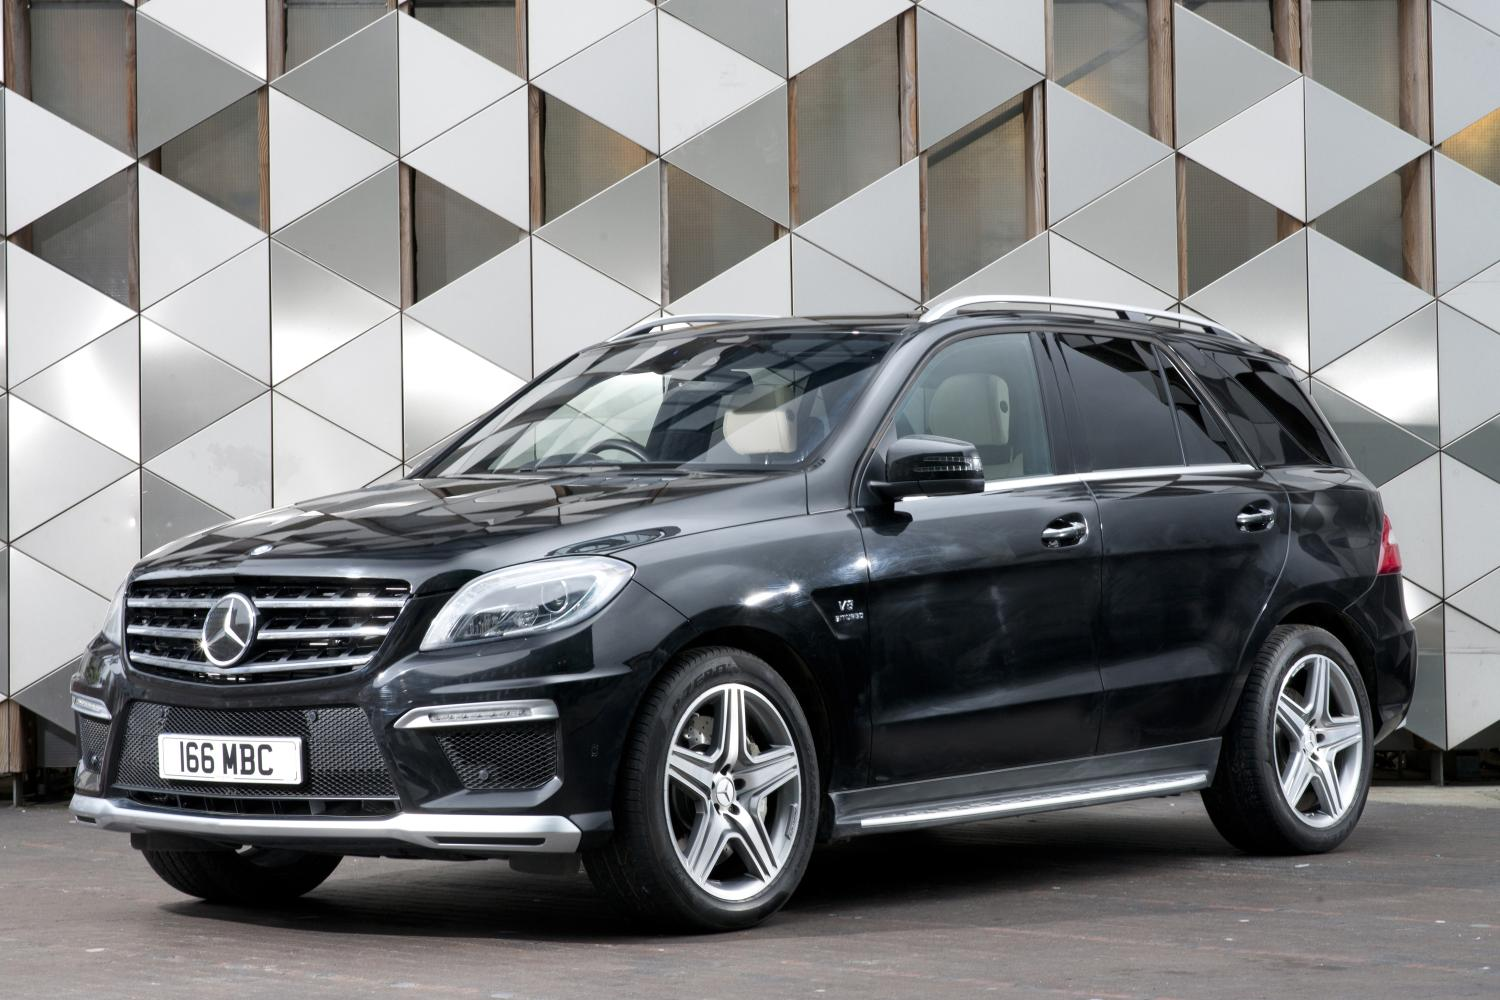 Mercedes benz ml63 amg india launch on may 15 pictures for Mercedes benz ml 63